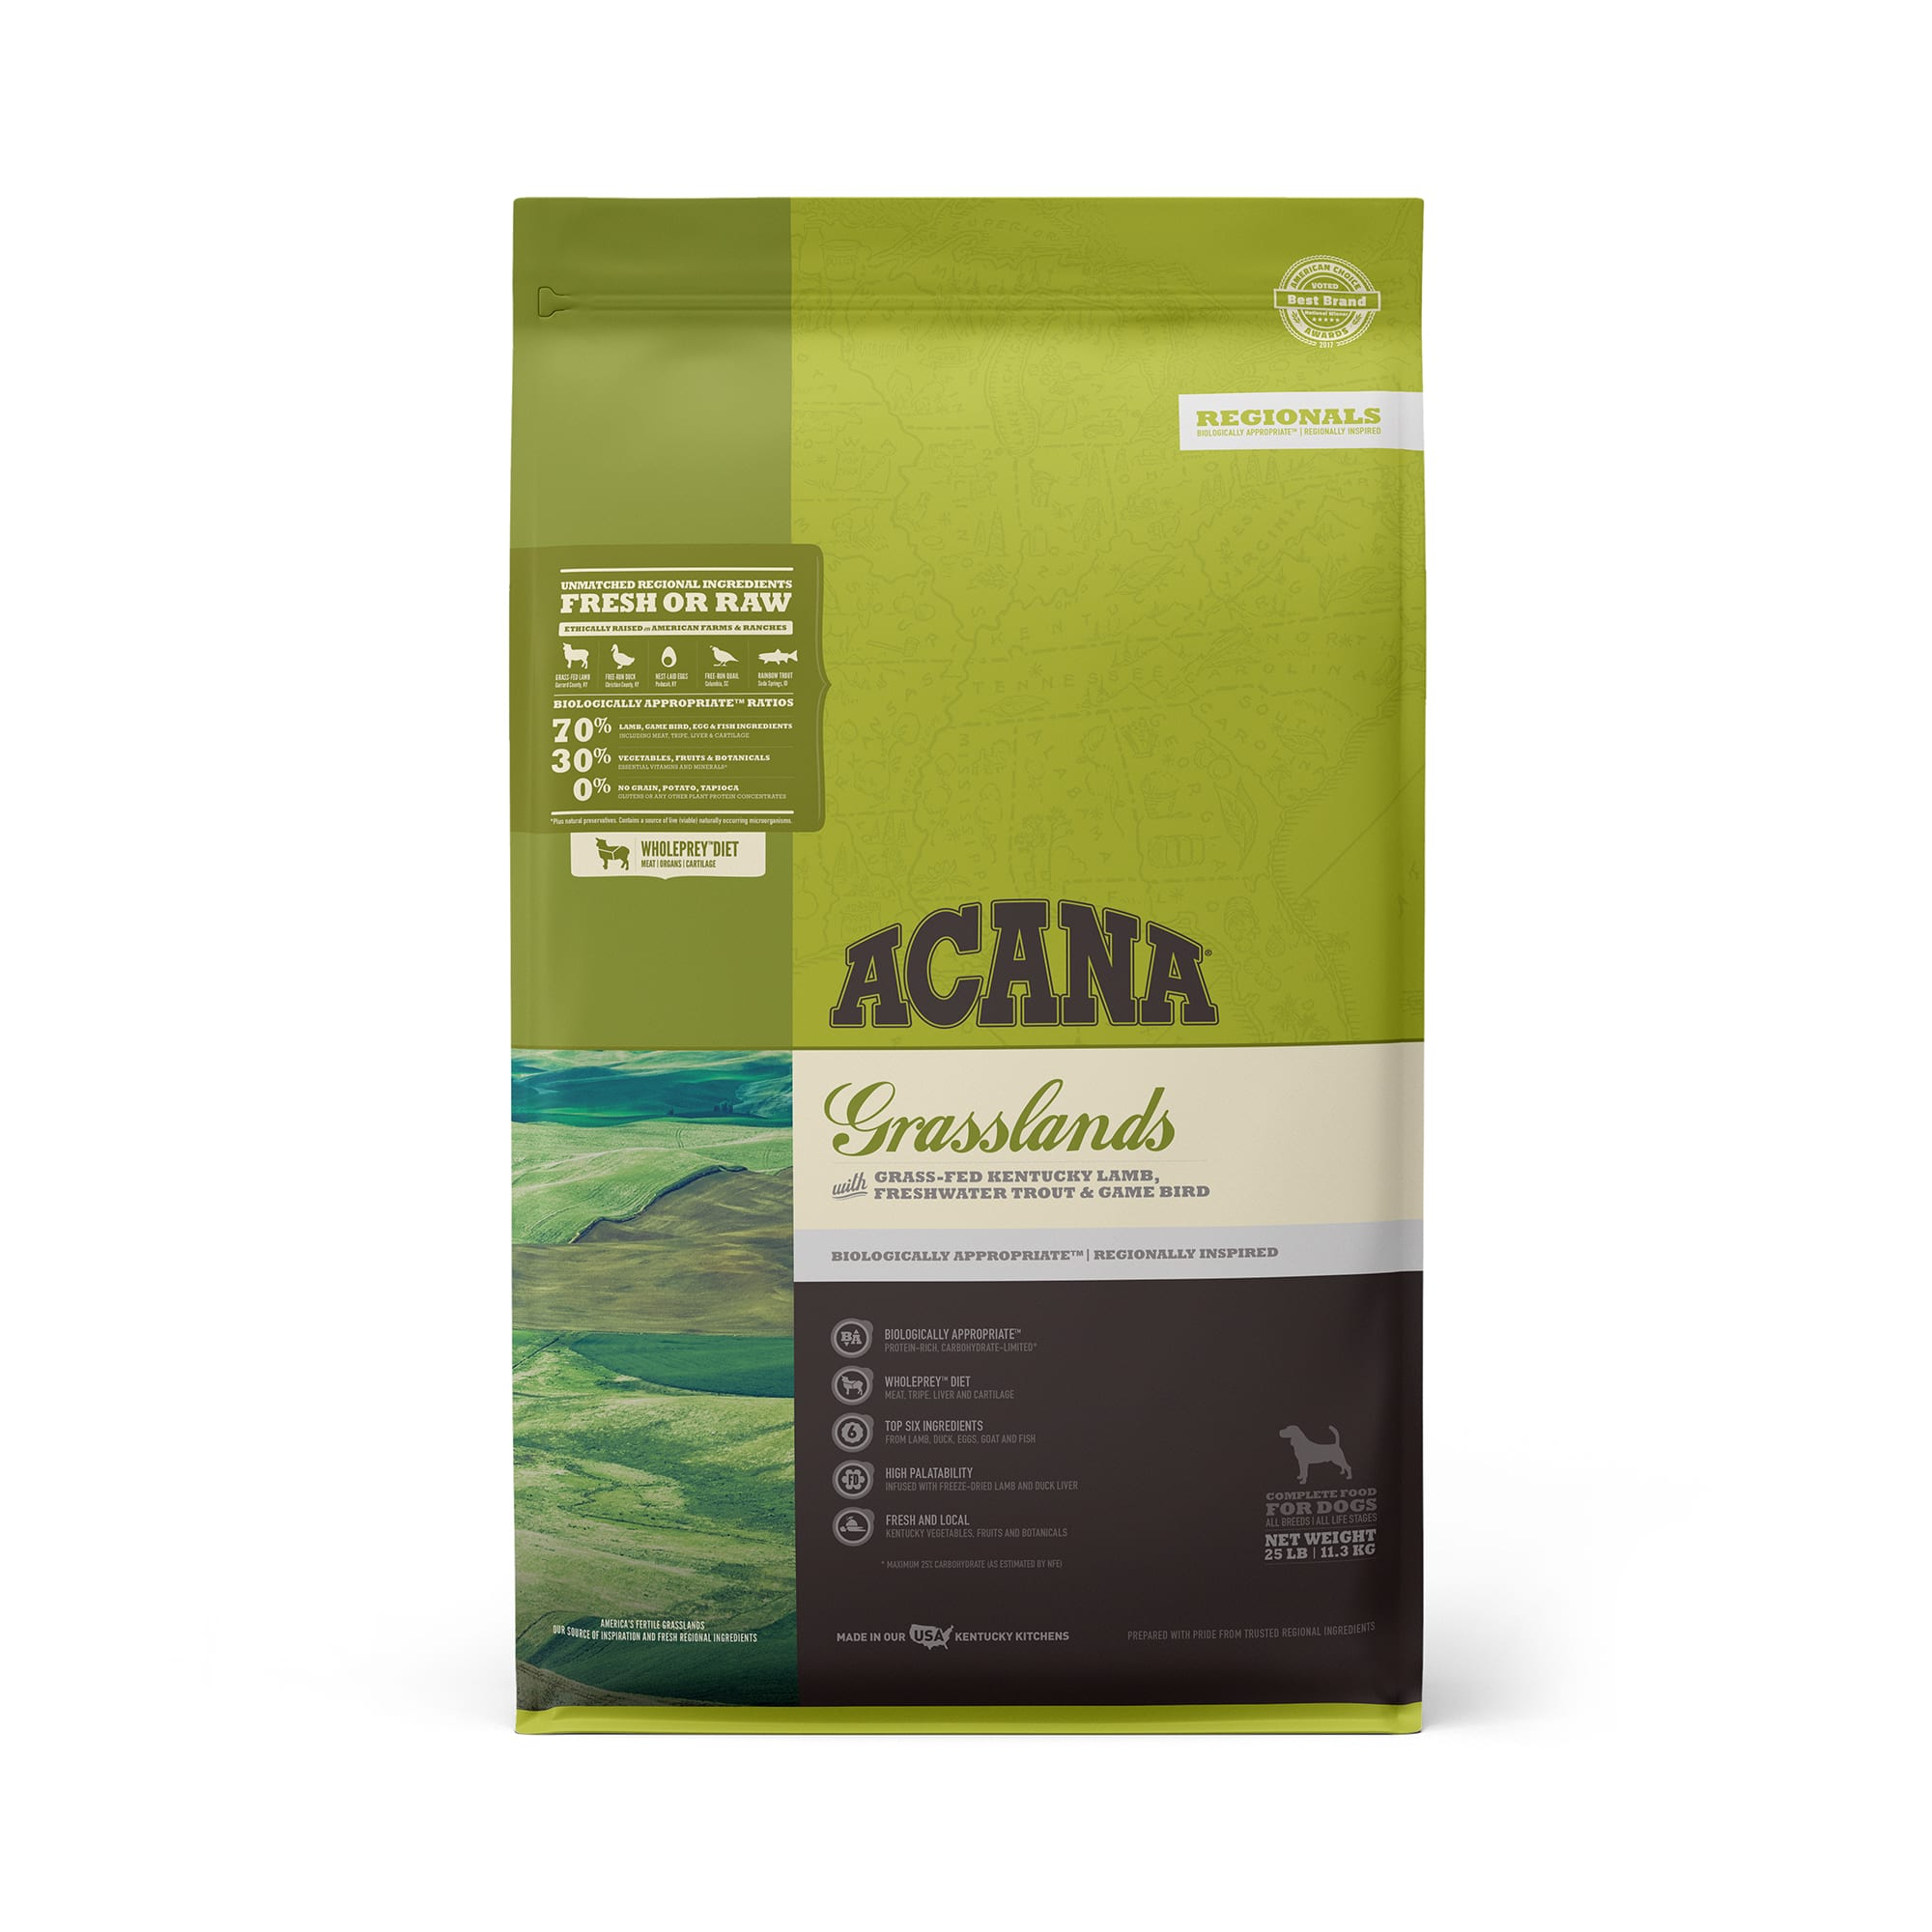 ACANA Grasslands Grain Free High Protein Freeze-Dried Coated Lamb Duck Trout and Quail Dry Dog Food, 25 lbs.